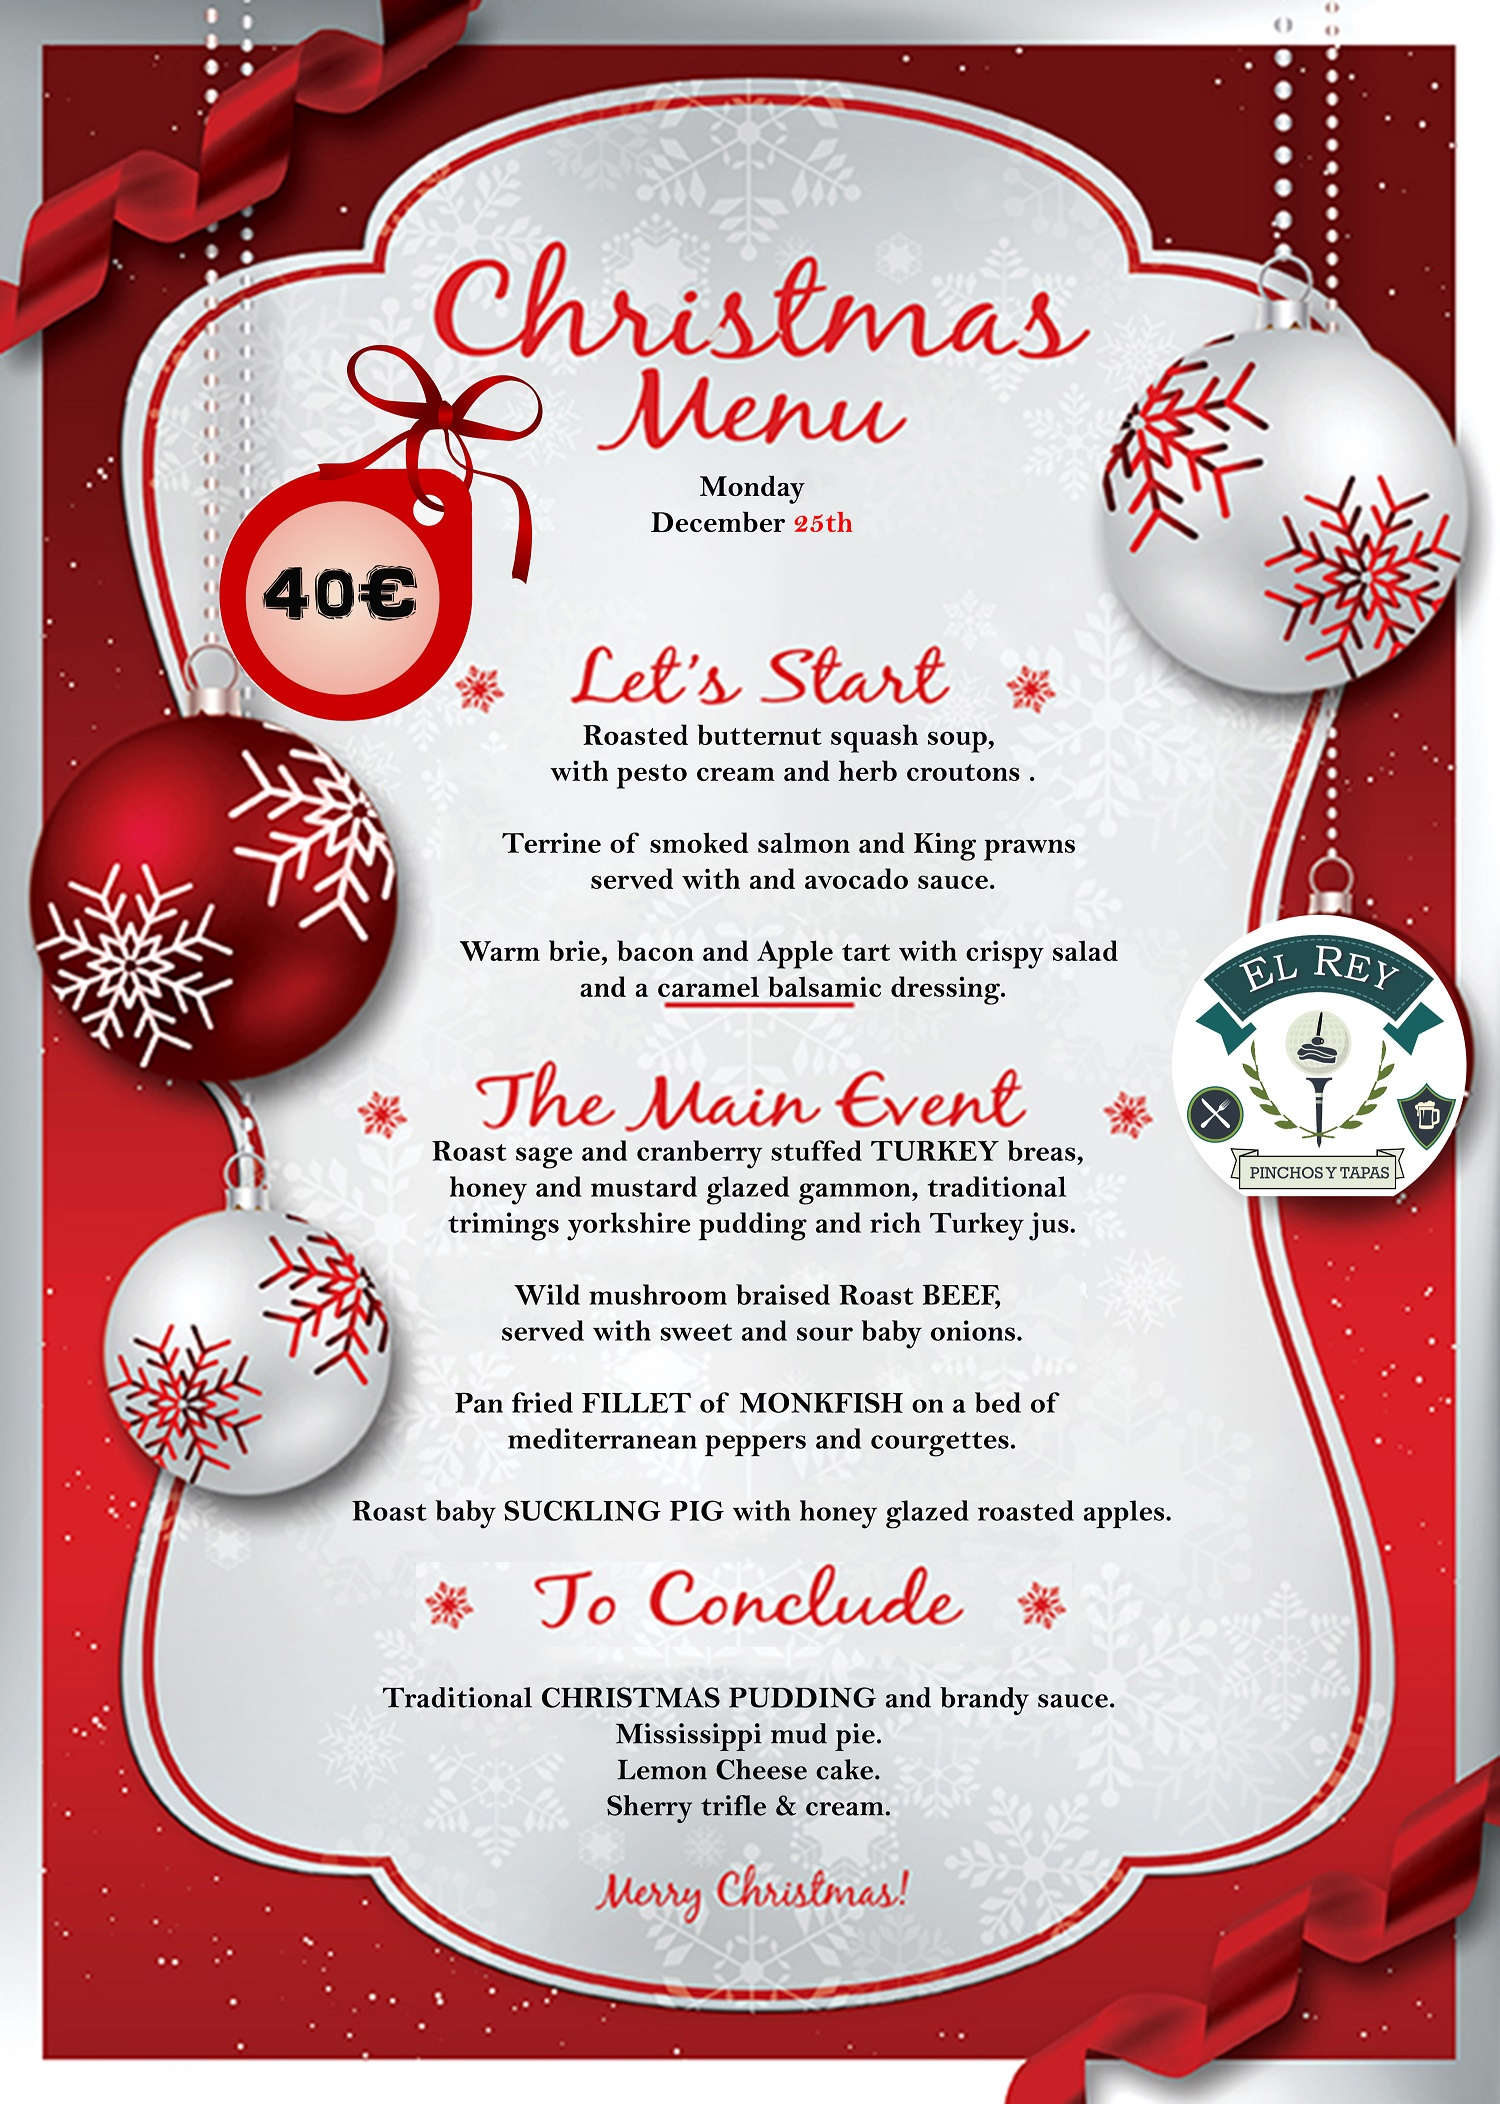 25th december christmas lunch and live music at el rey restobar balsicas